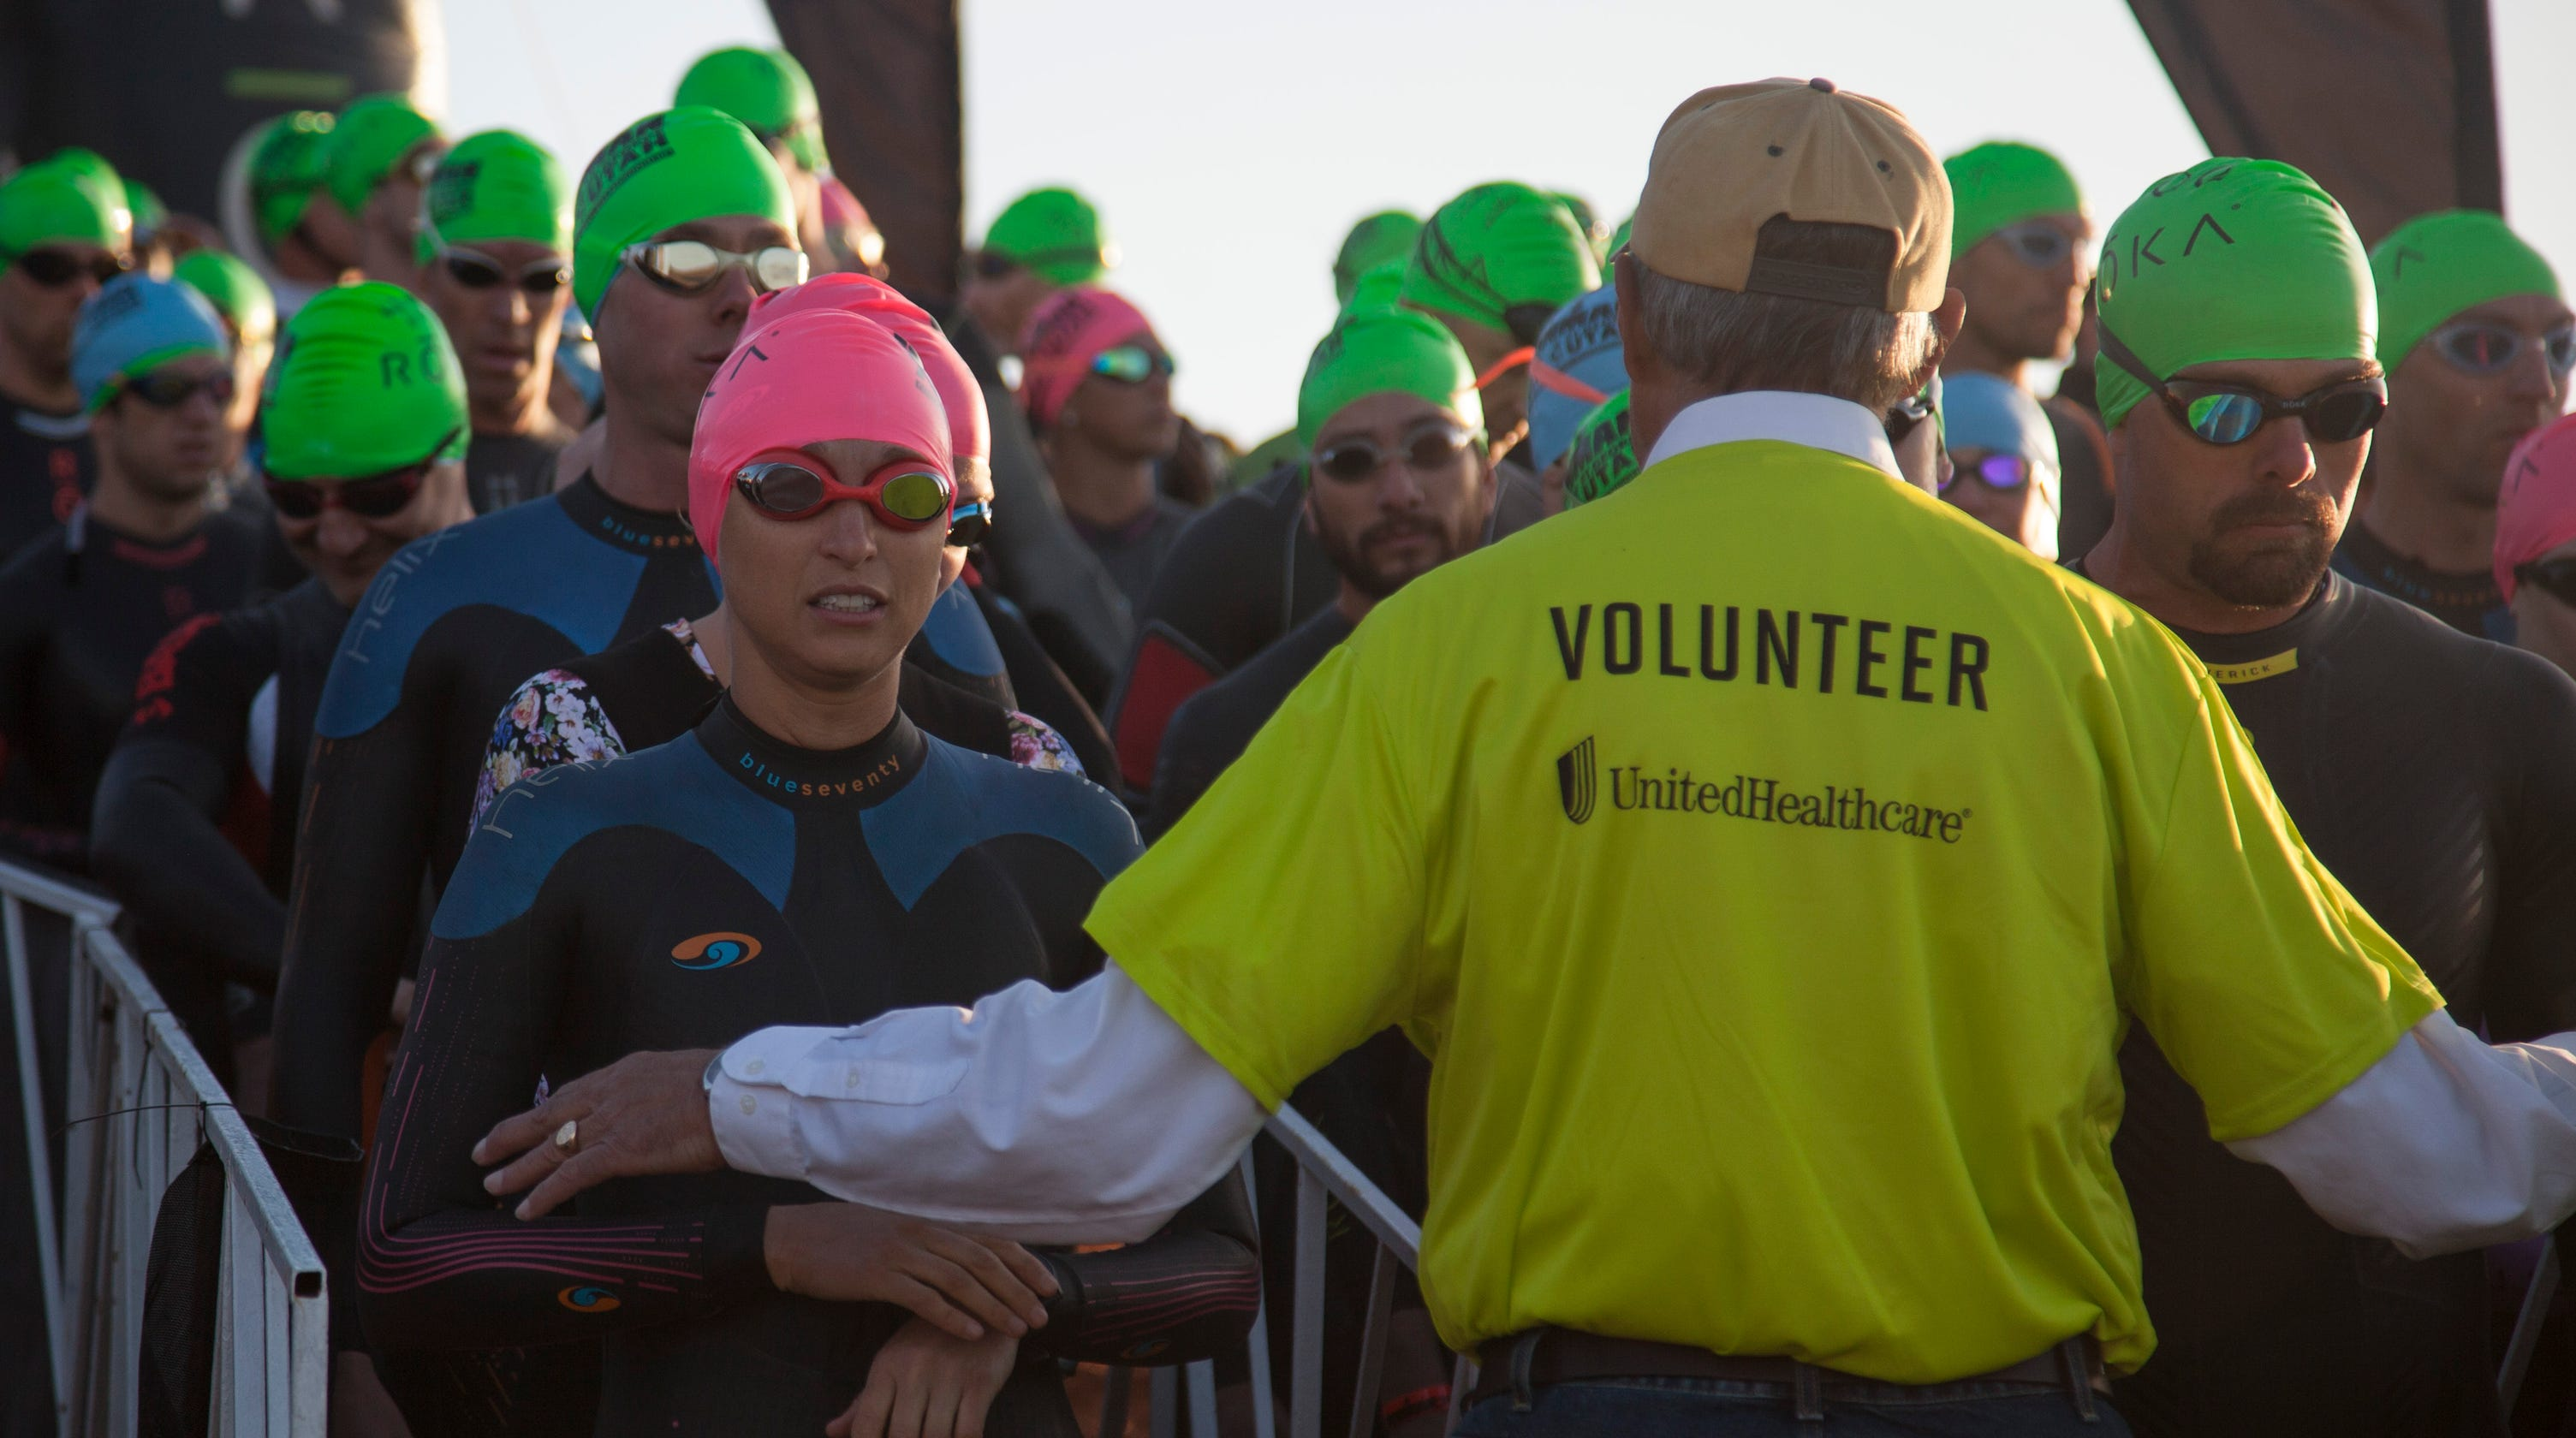 St. George IRONMAN: Race officials are asking locals for volunteer help on race day and more